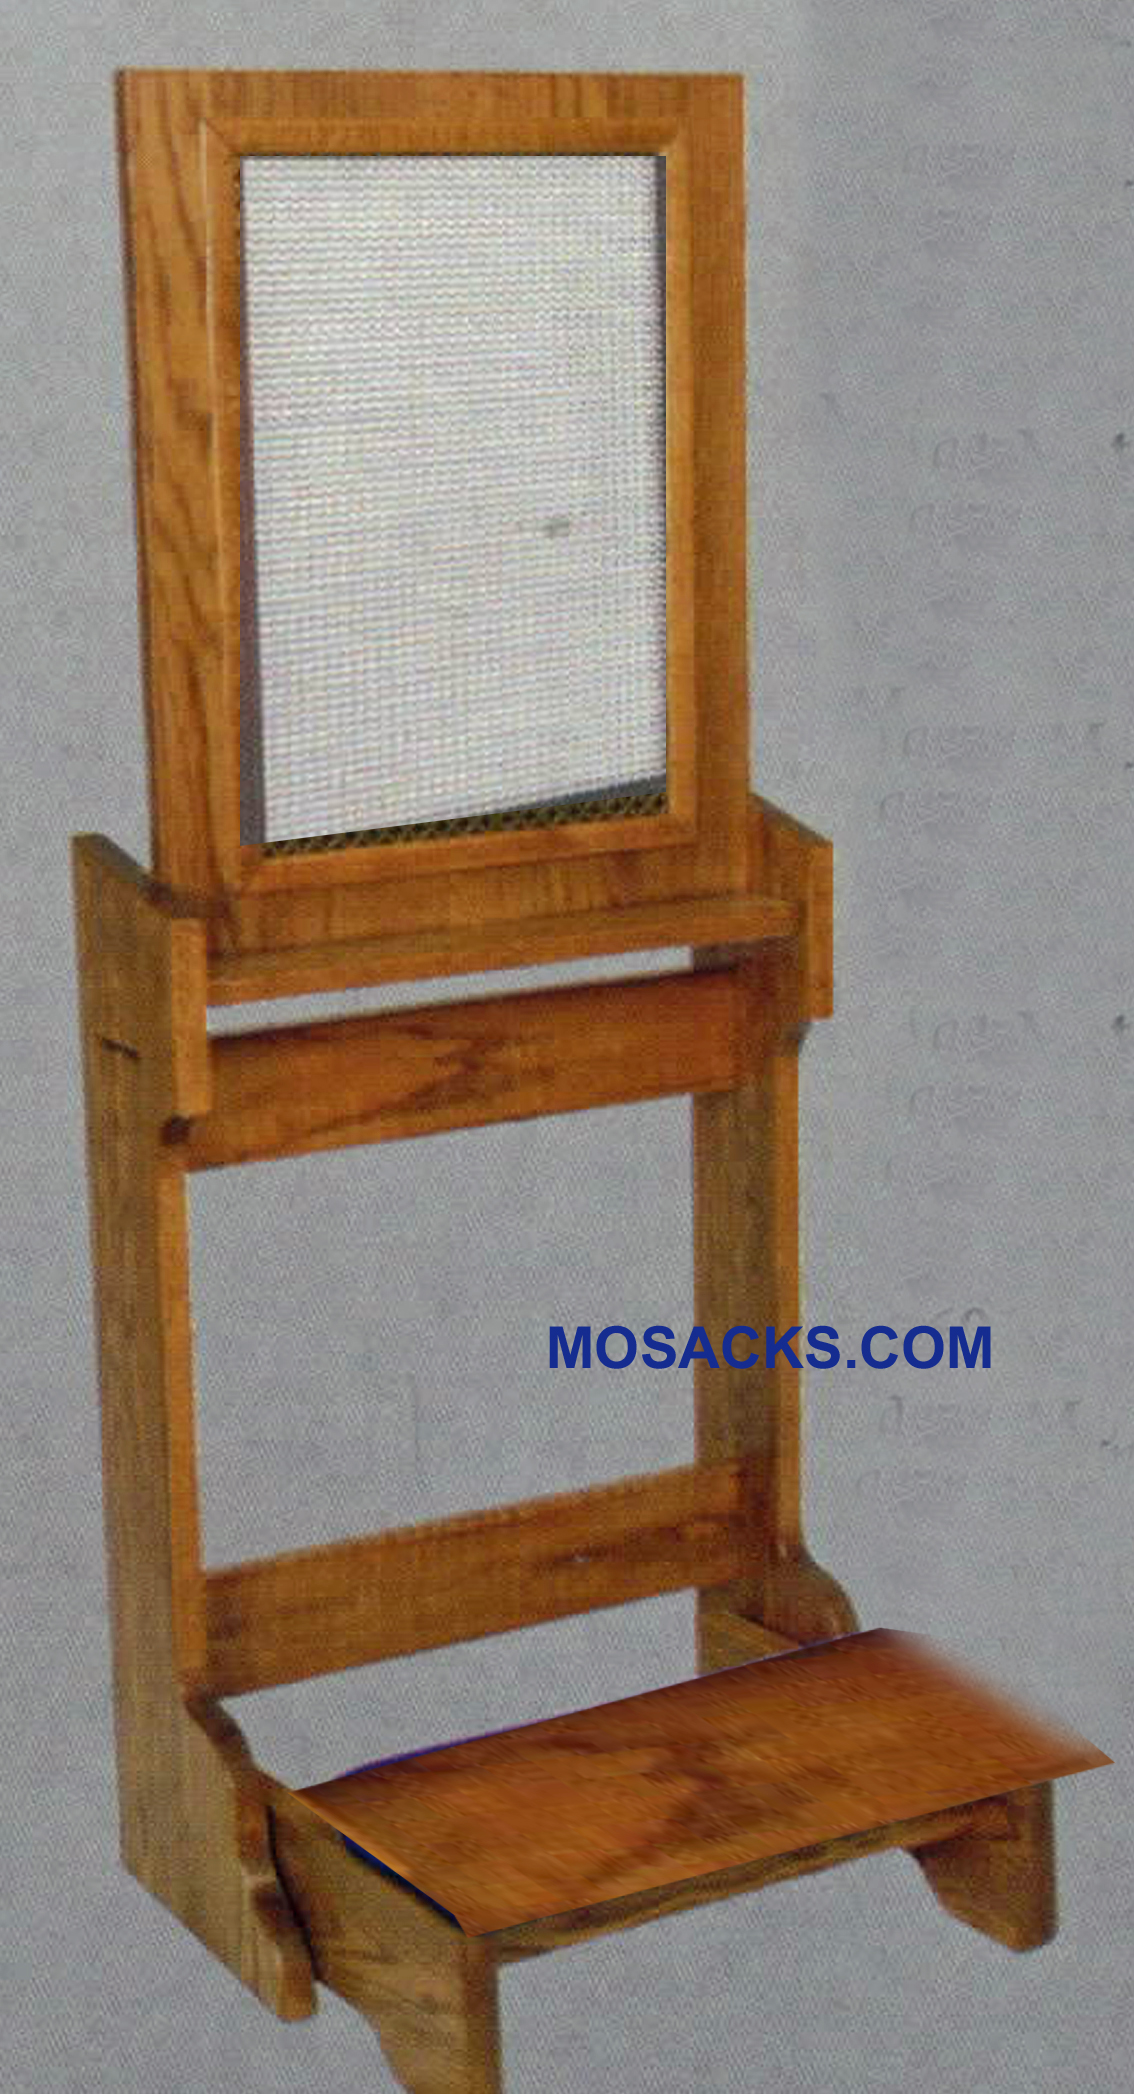 "Confessional Prie Dieu w/ stationary kneeler and screen 22""w x 21"" d 2450"